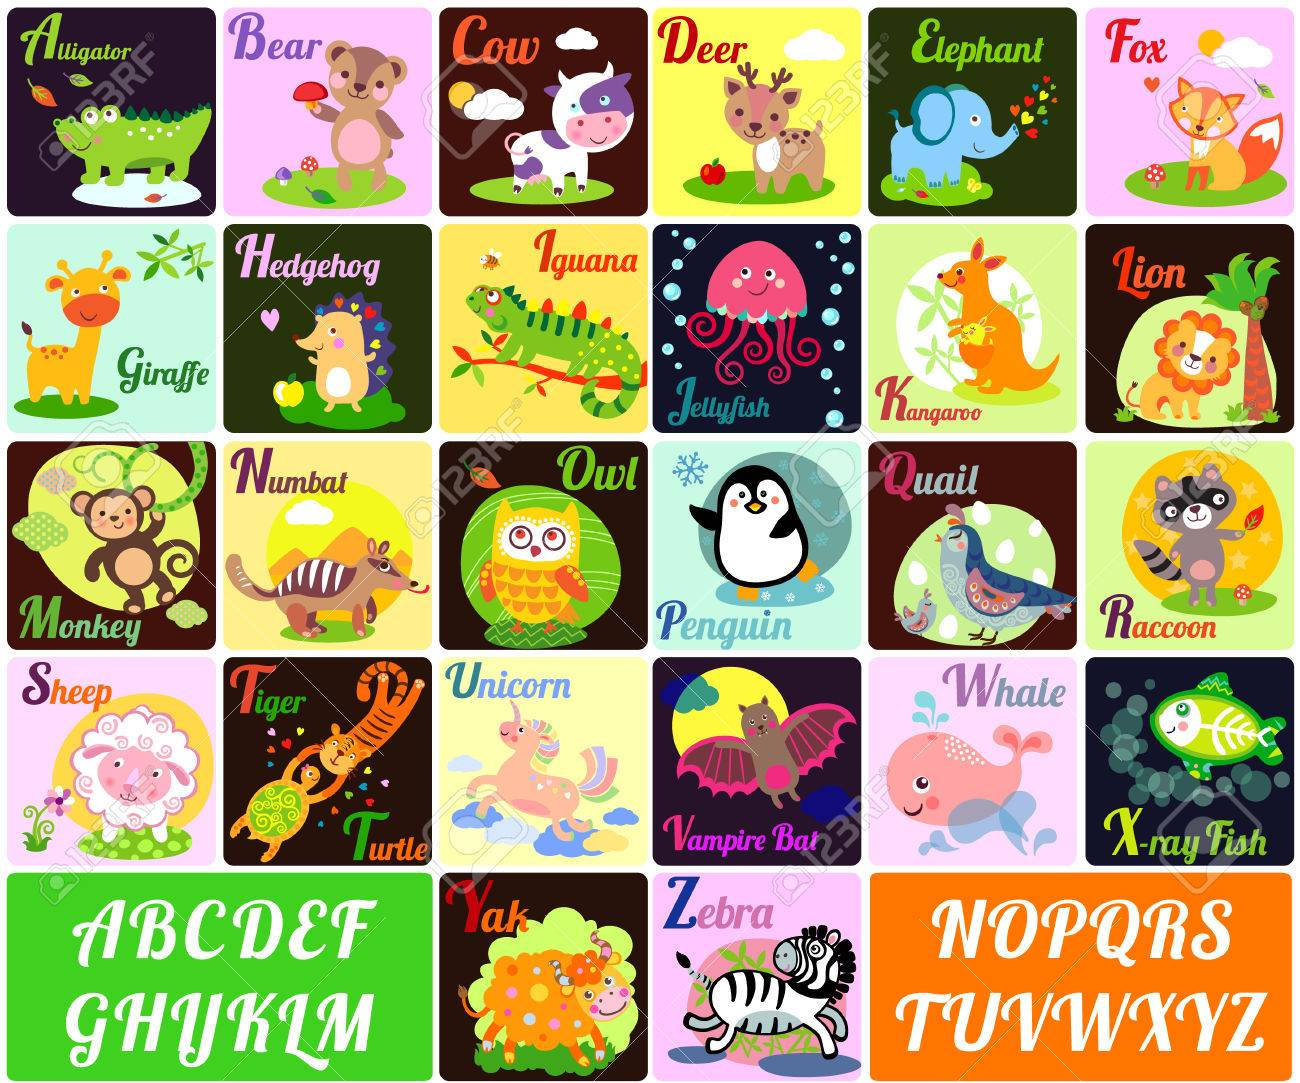 a vector illustration of alphabet animals from a to z royalty free